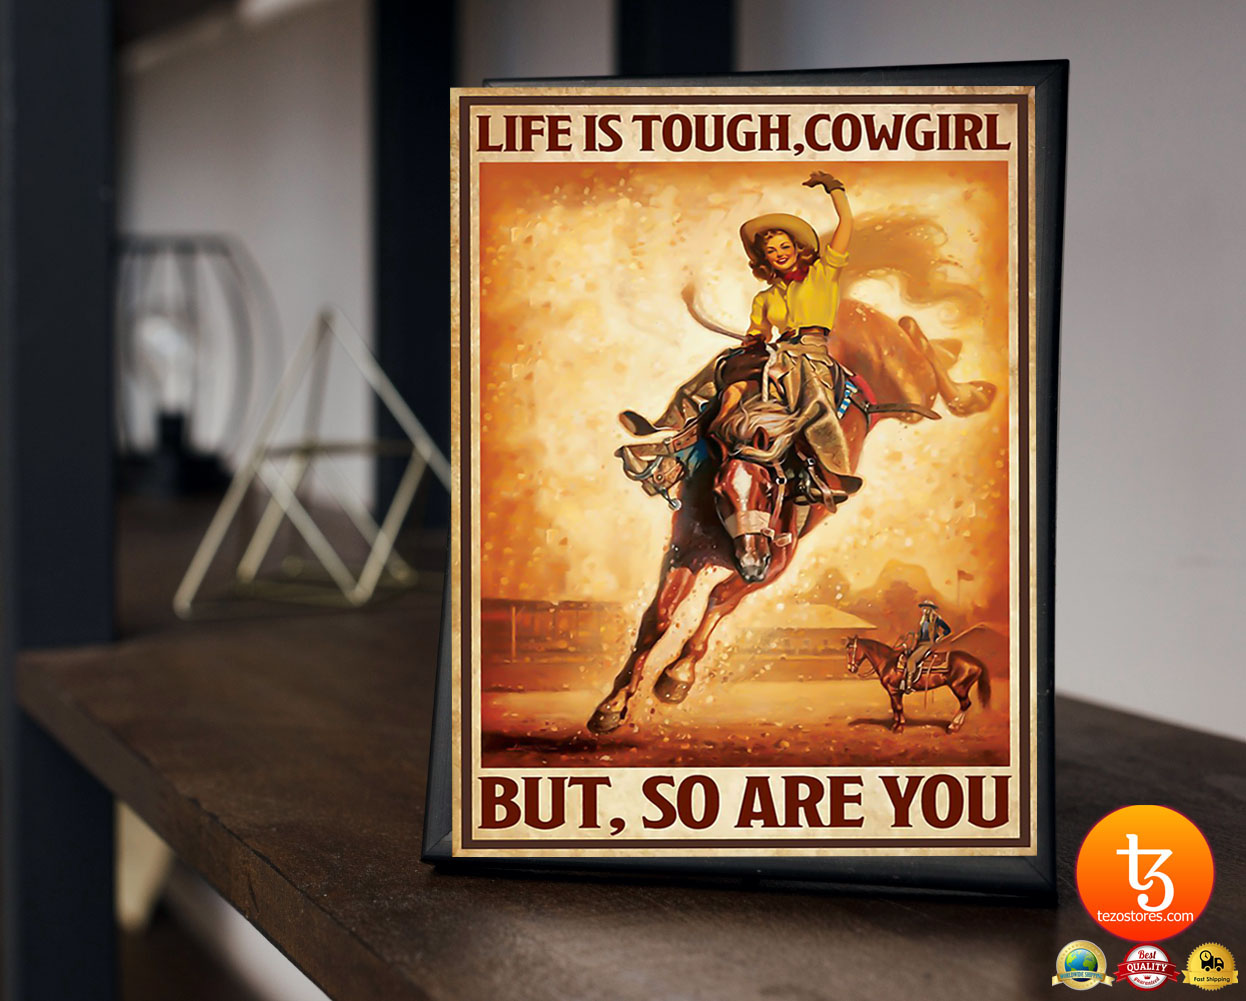 Life is touch cowgirl but so are you poster 19